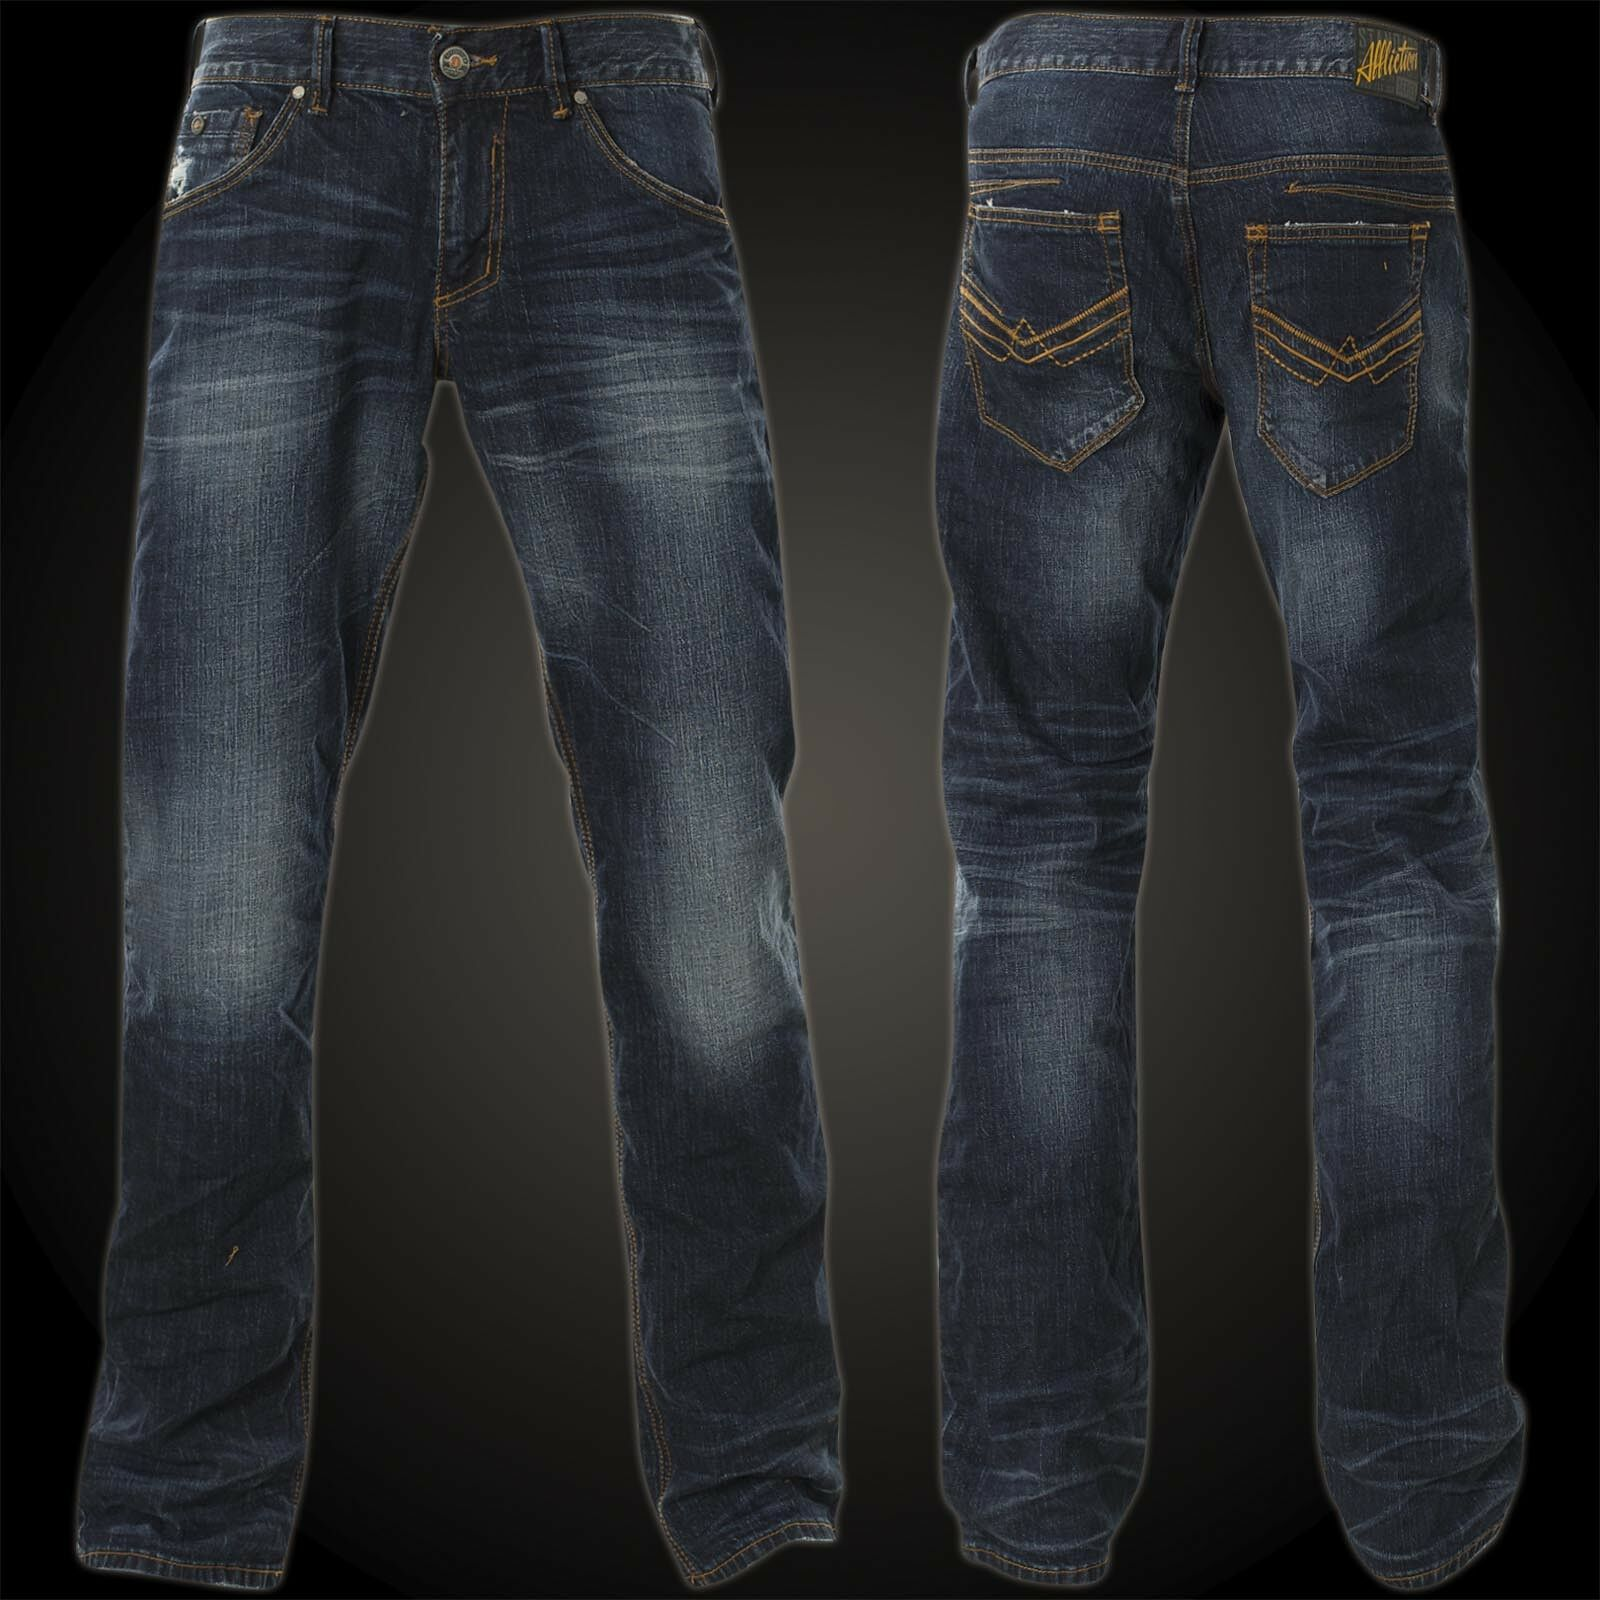 Affliction Jeans Ace Ascended Tacoma Dark bluee